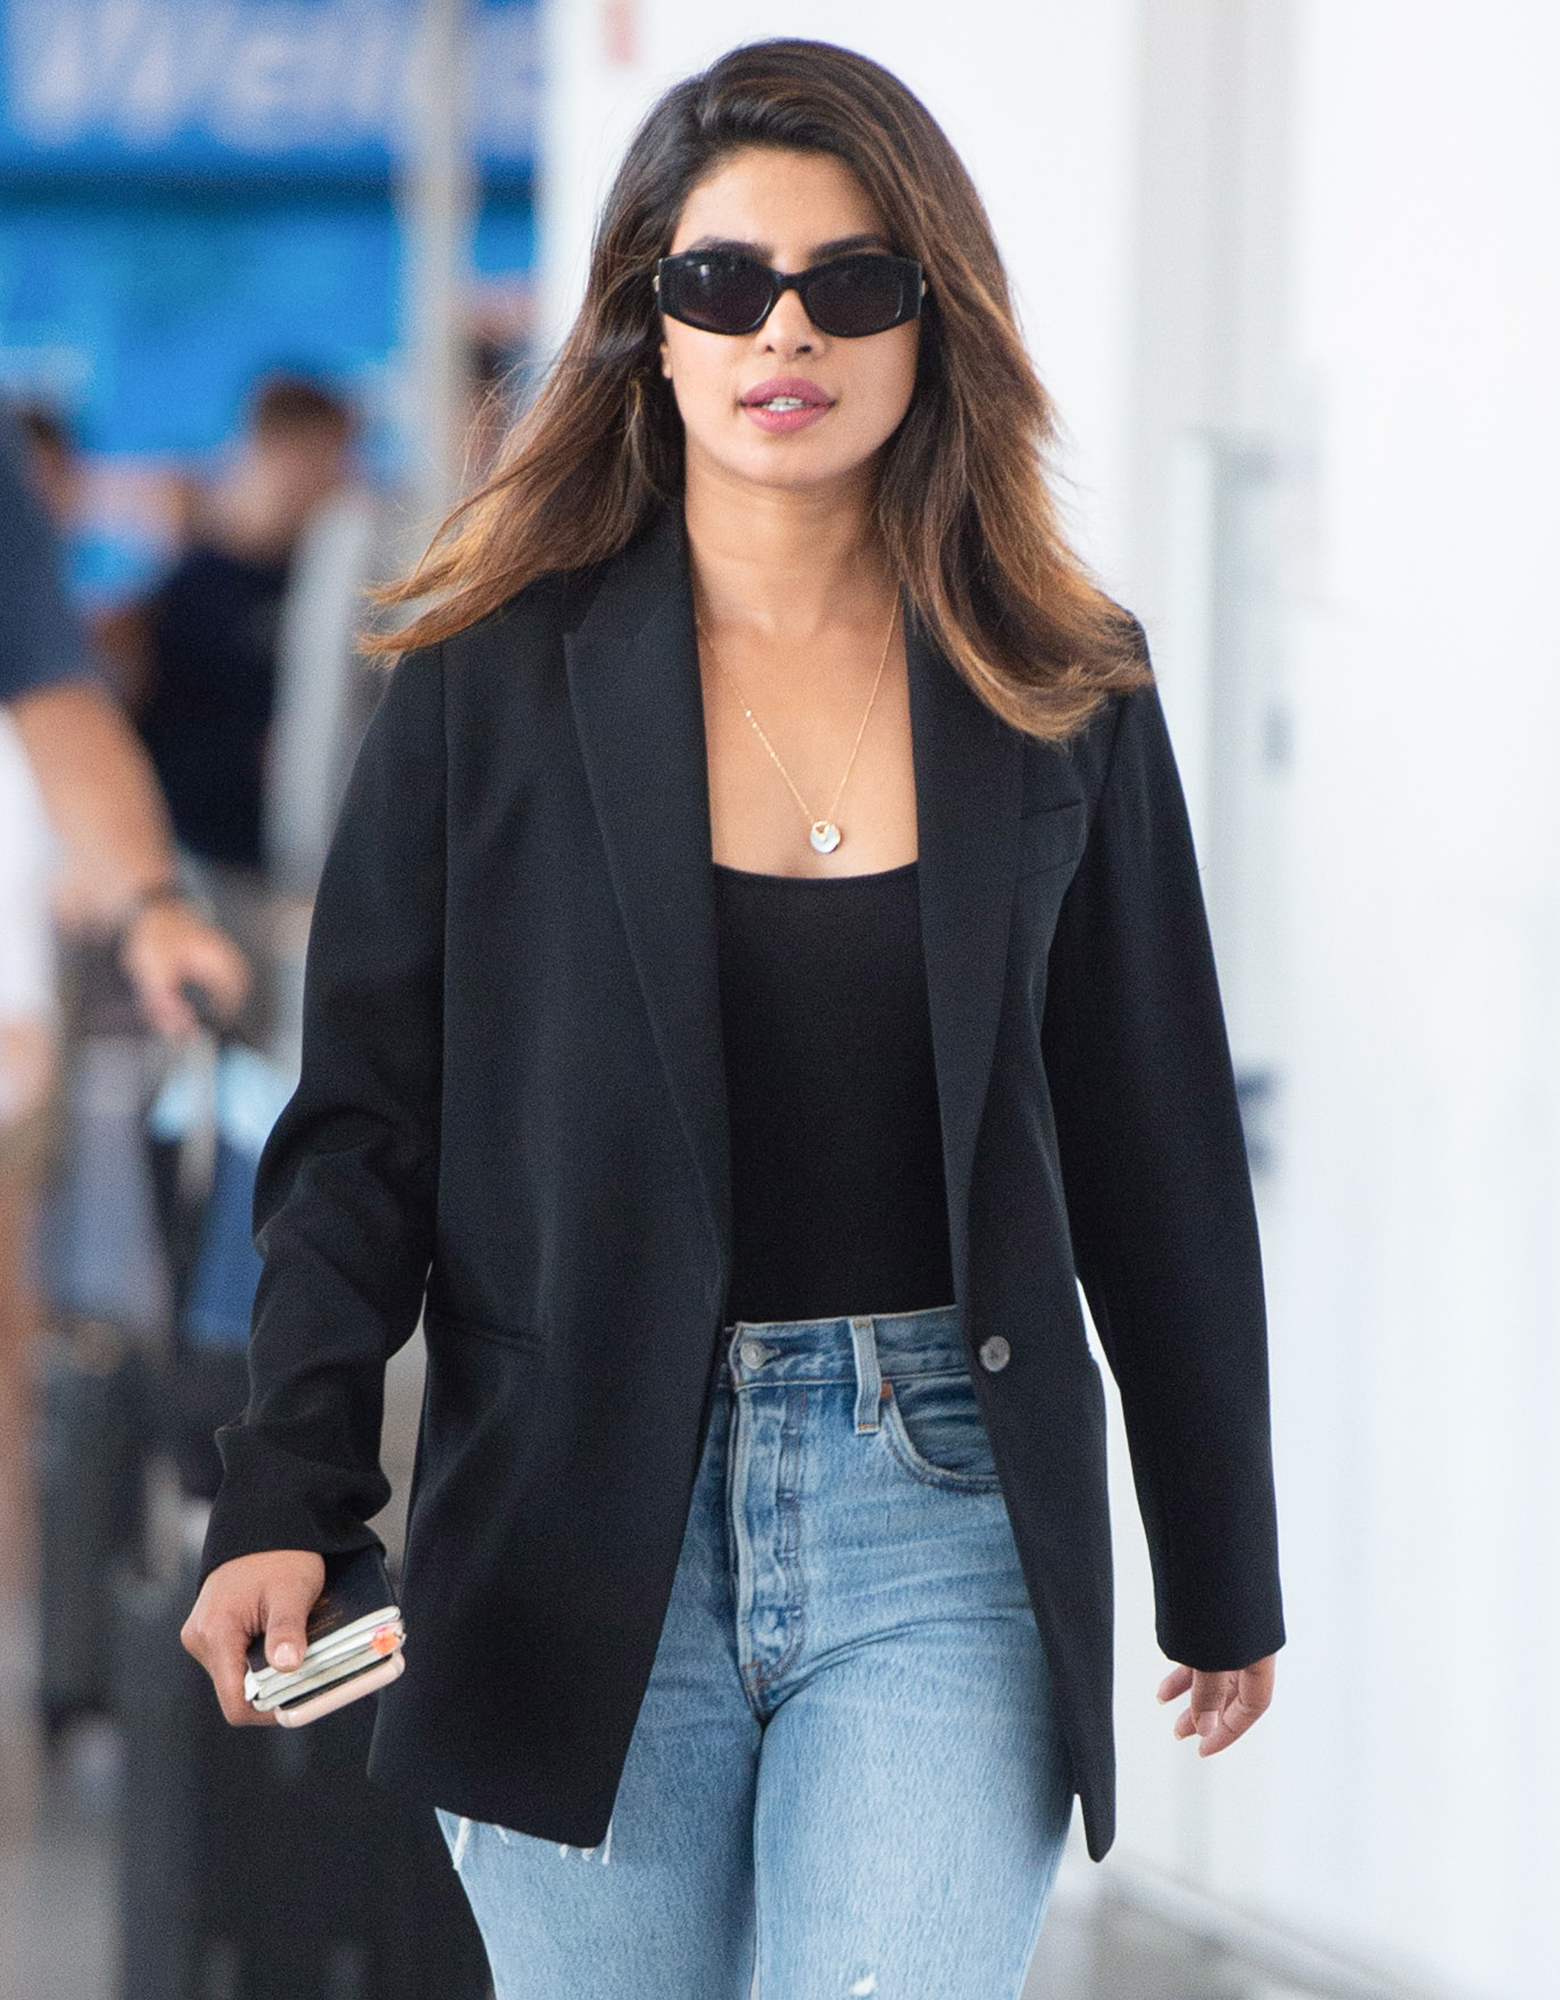 EXCLUSIVE: Priyanka Chopra Arrives At JFK Airport In New York